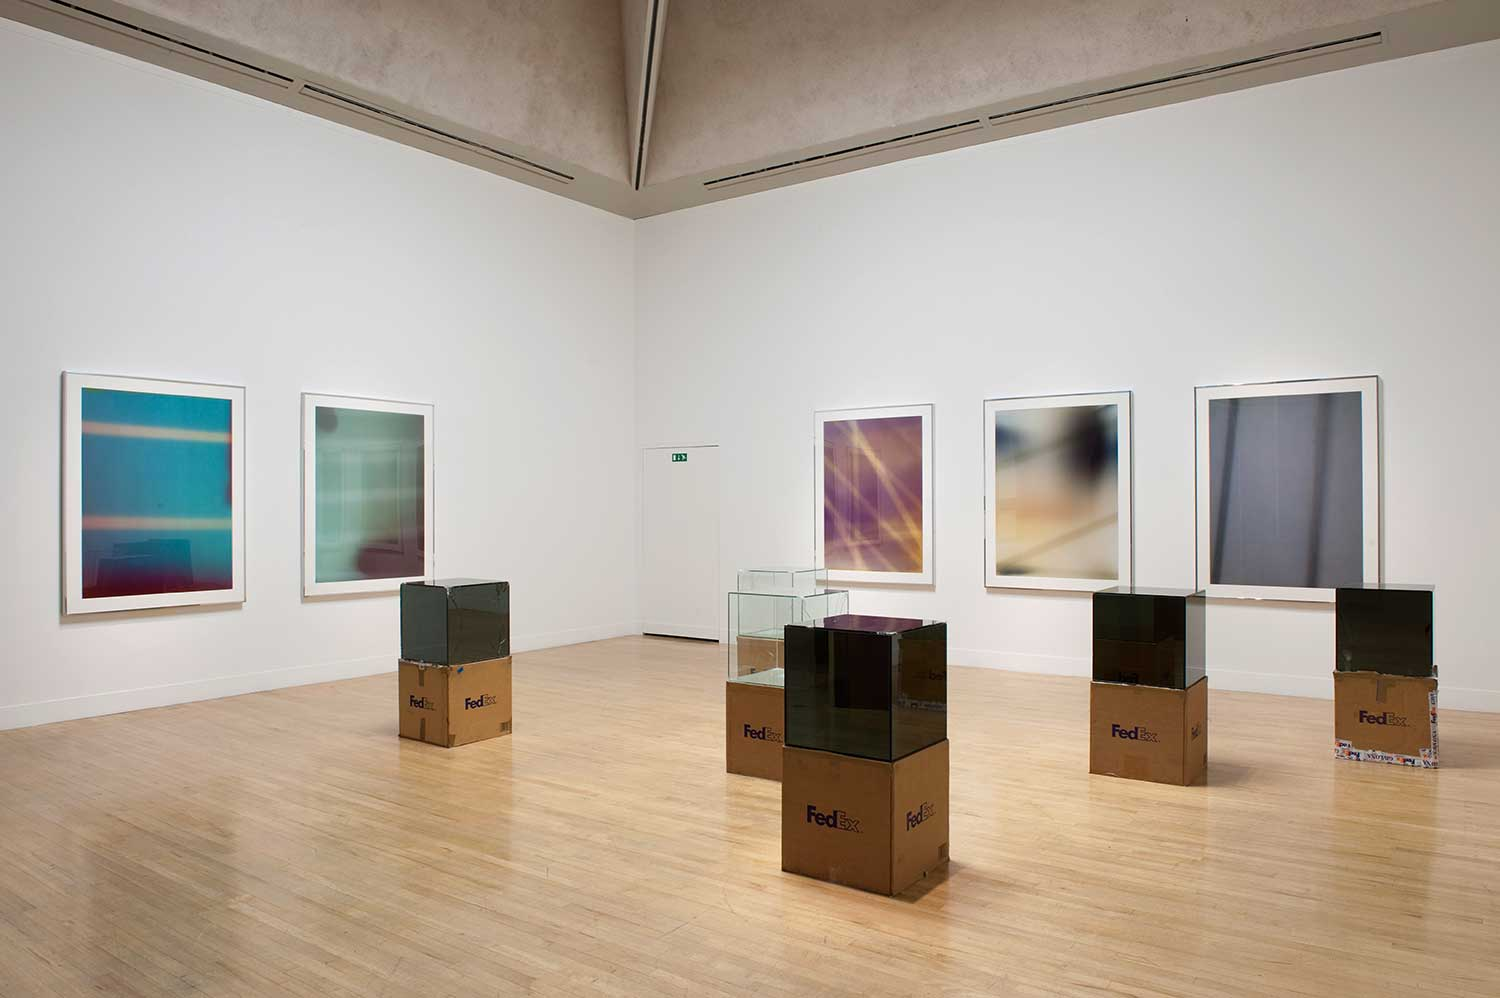 Installation view of Altermodern: 2009 Tate Triennial Exhibition, 2009, Tate Britain, London. Photo: Sam Drake, Tate Photography, courtesy of the artist; Regen Projects, Los Angeles; and Thomas Dane Gallery, London